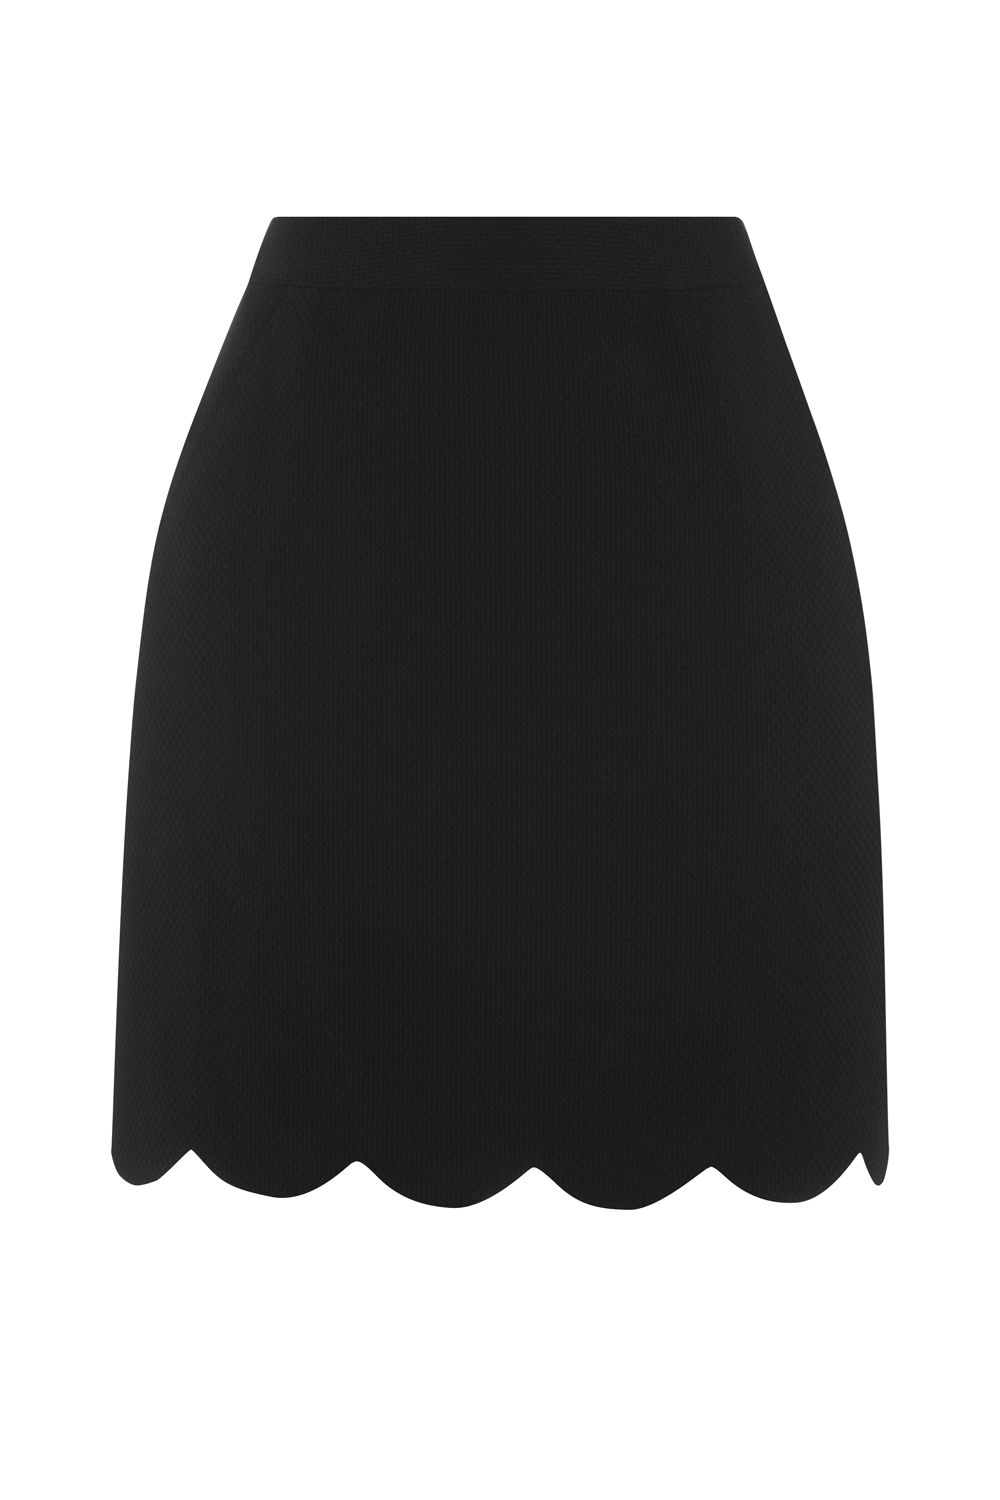 Oasis SCALLOP POCKET SKIRT, Black